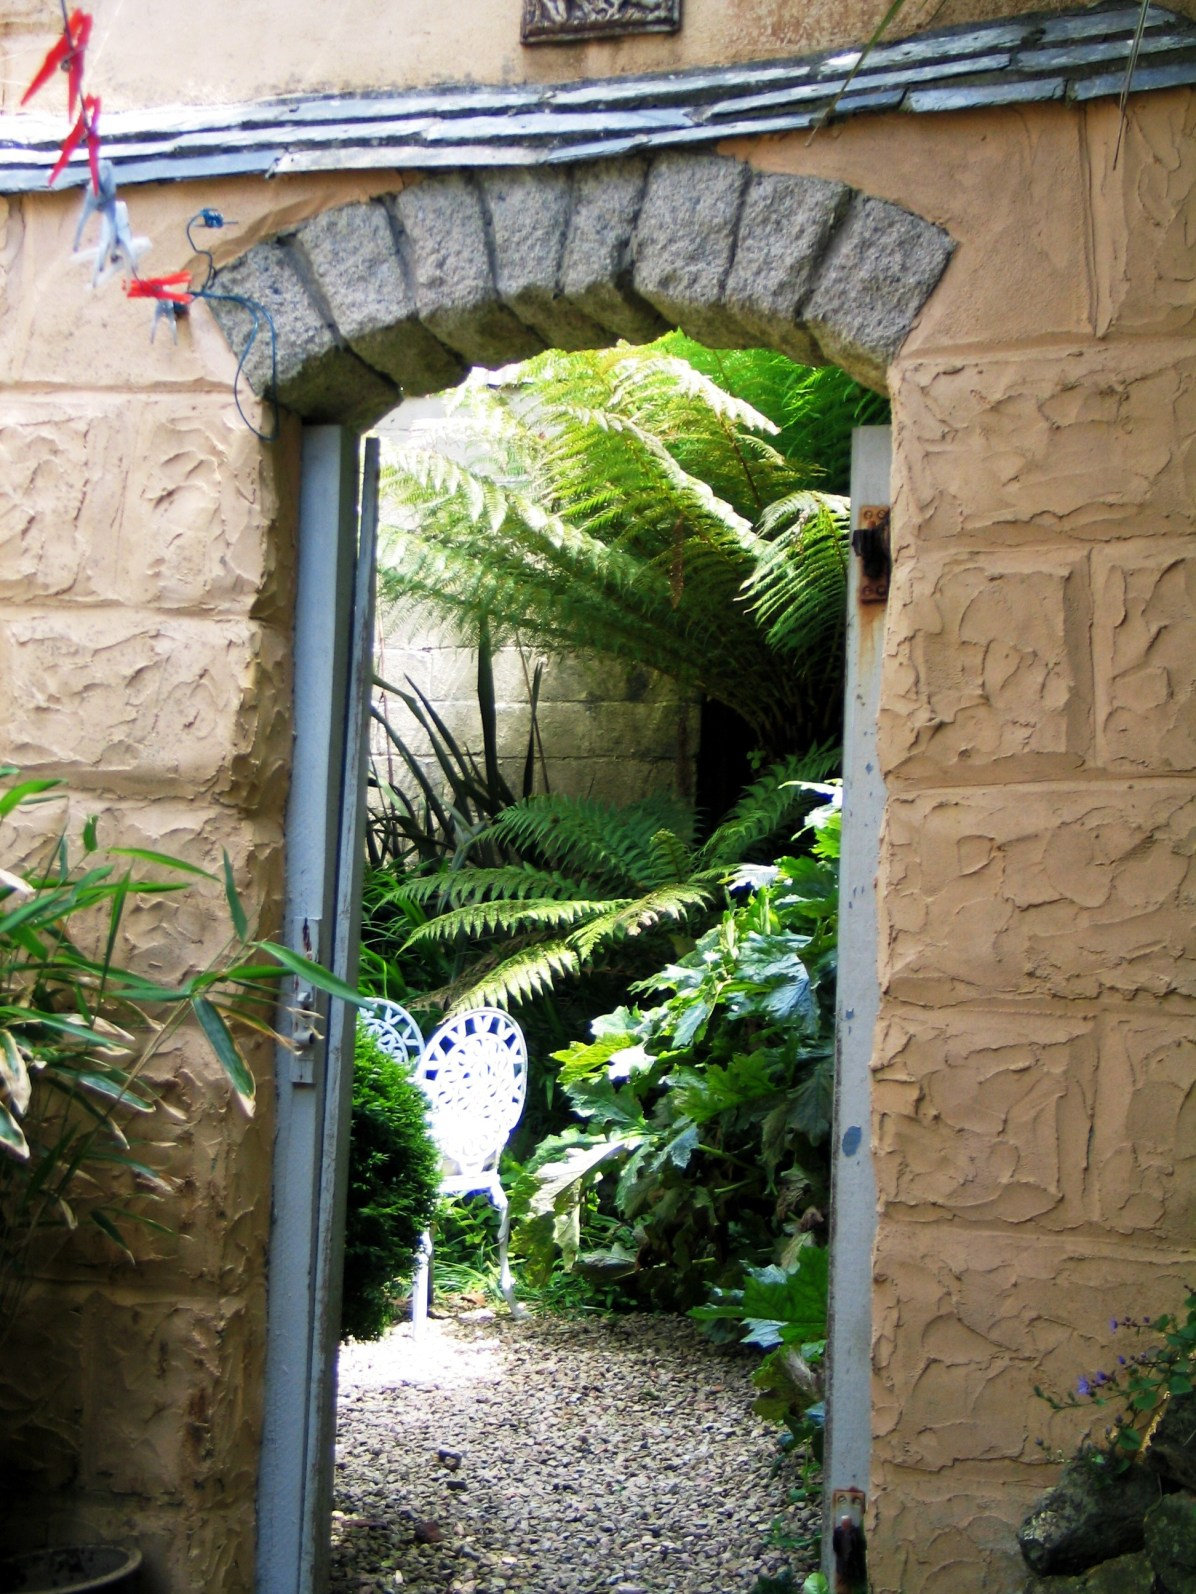 The drying courtyard with Tree ferns beyond